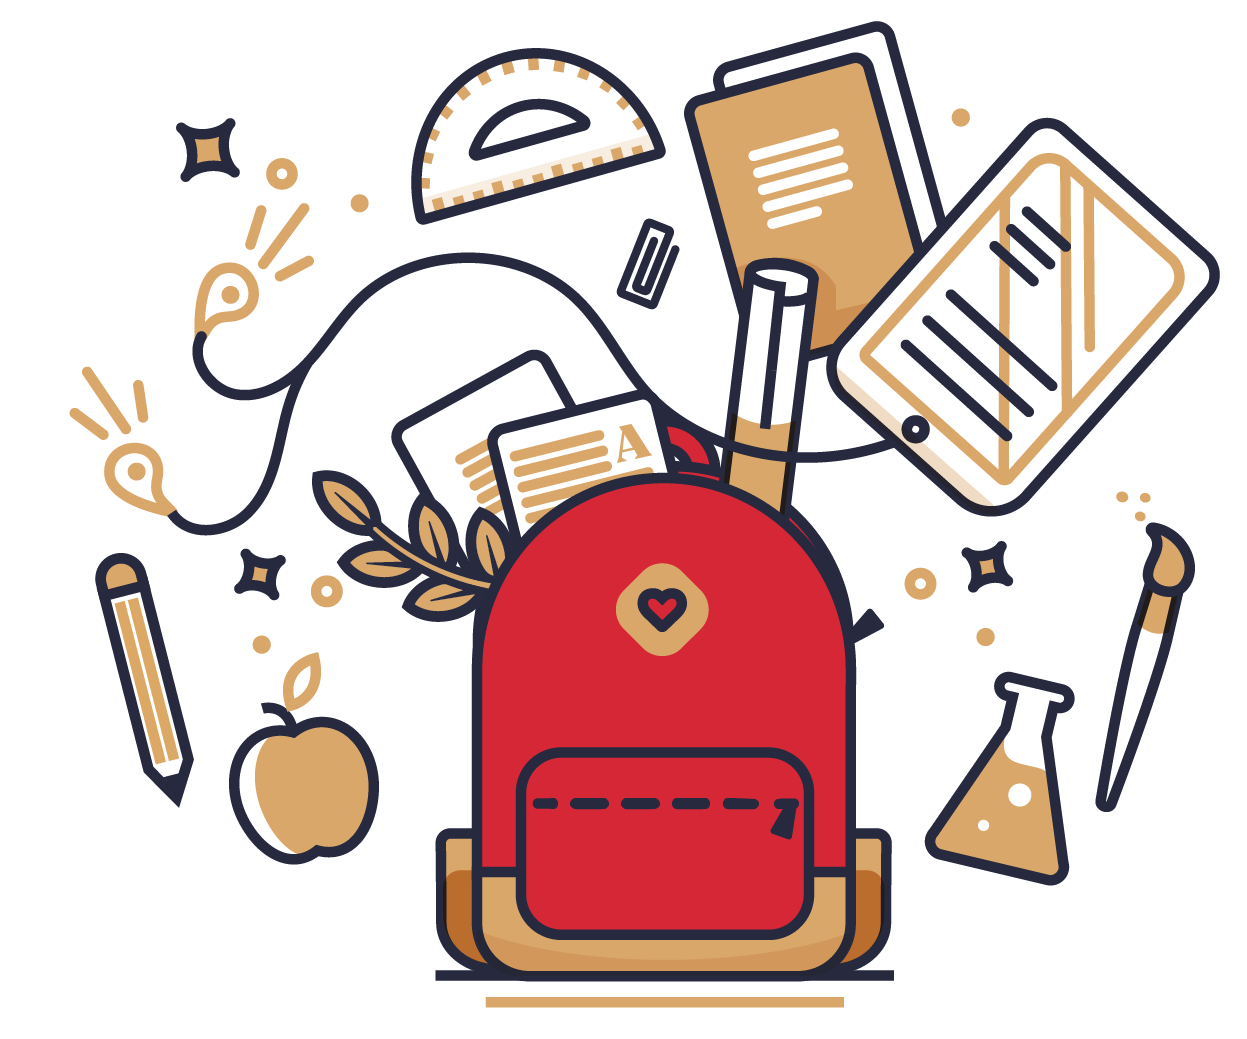 Illustration: Full backpack with school elements